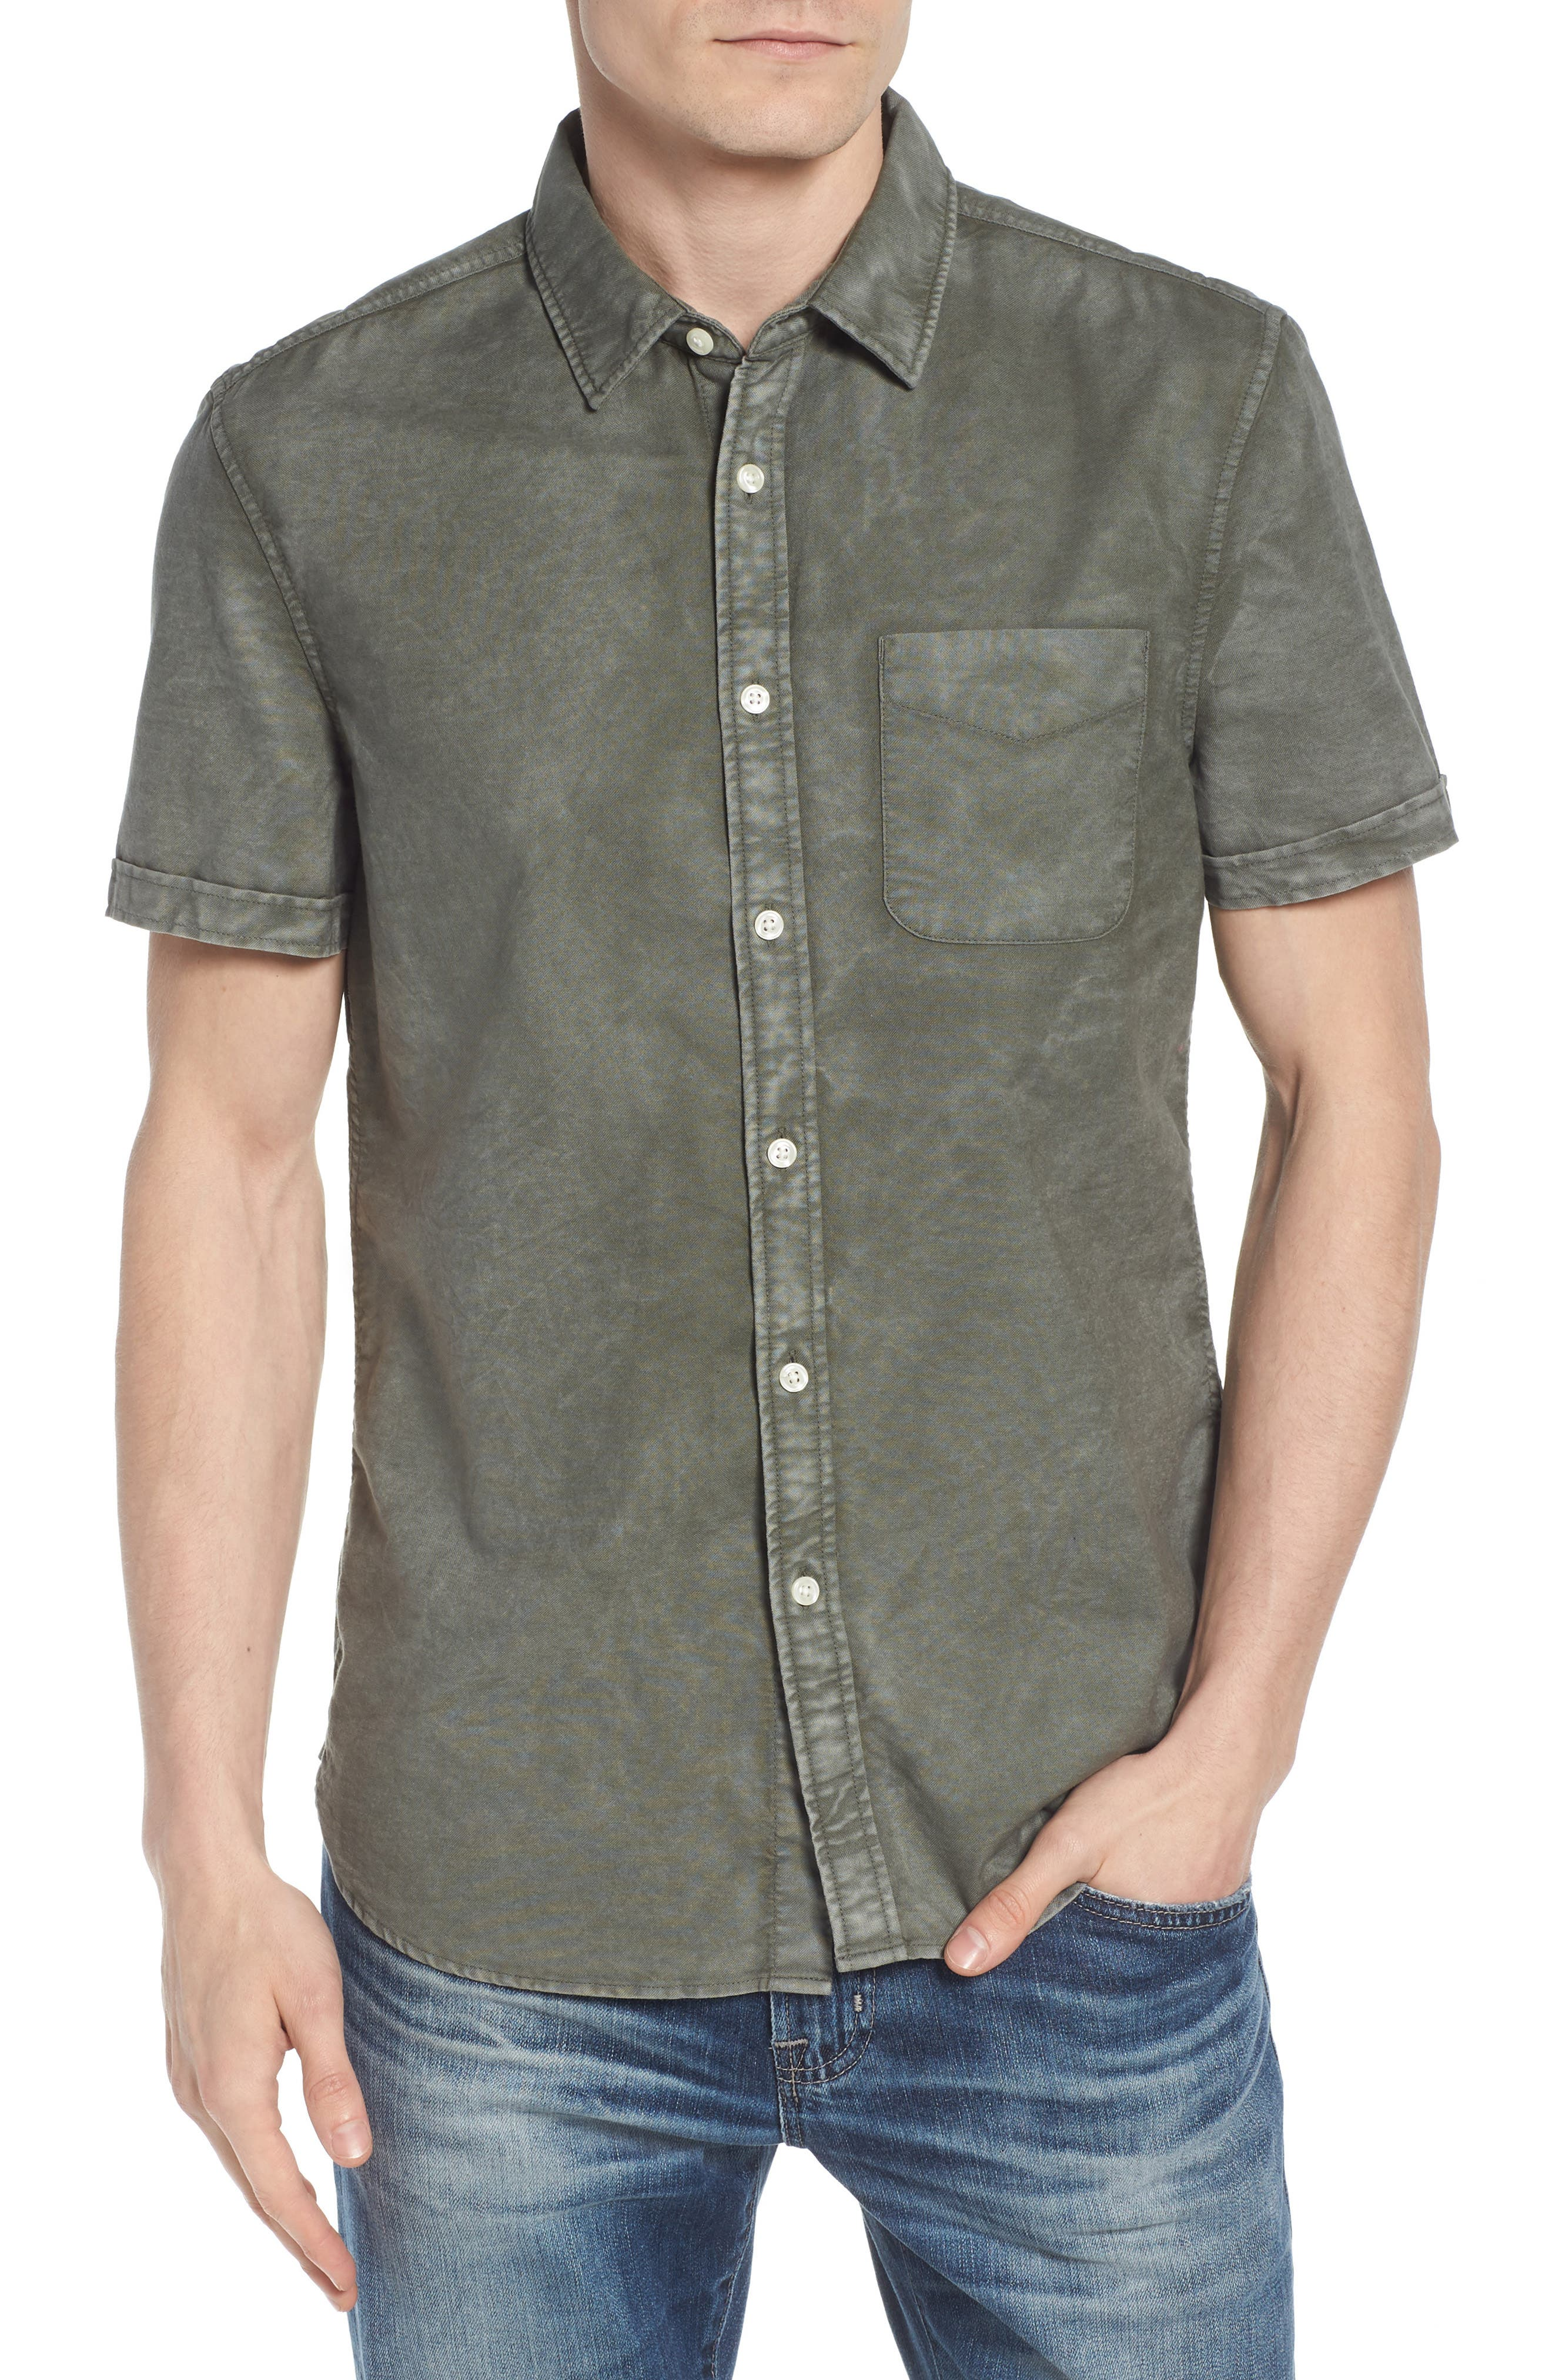 Pearson Slim Fit Sport Shirt,                         Main,                         color, SUNBAKED DESERT PINE